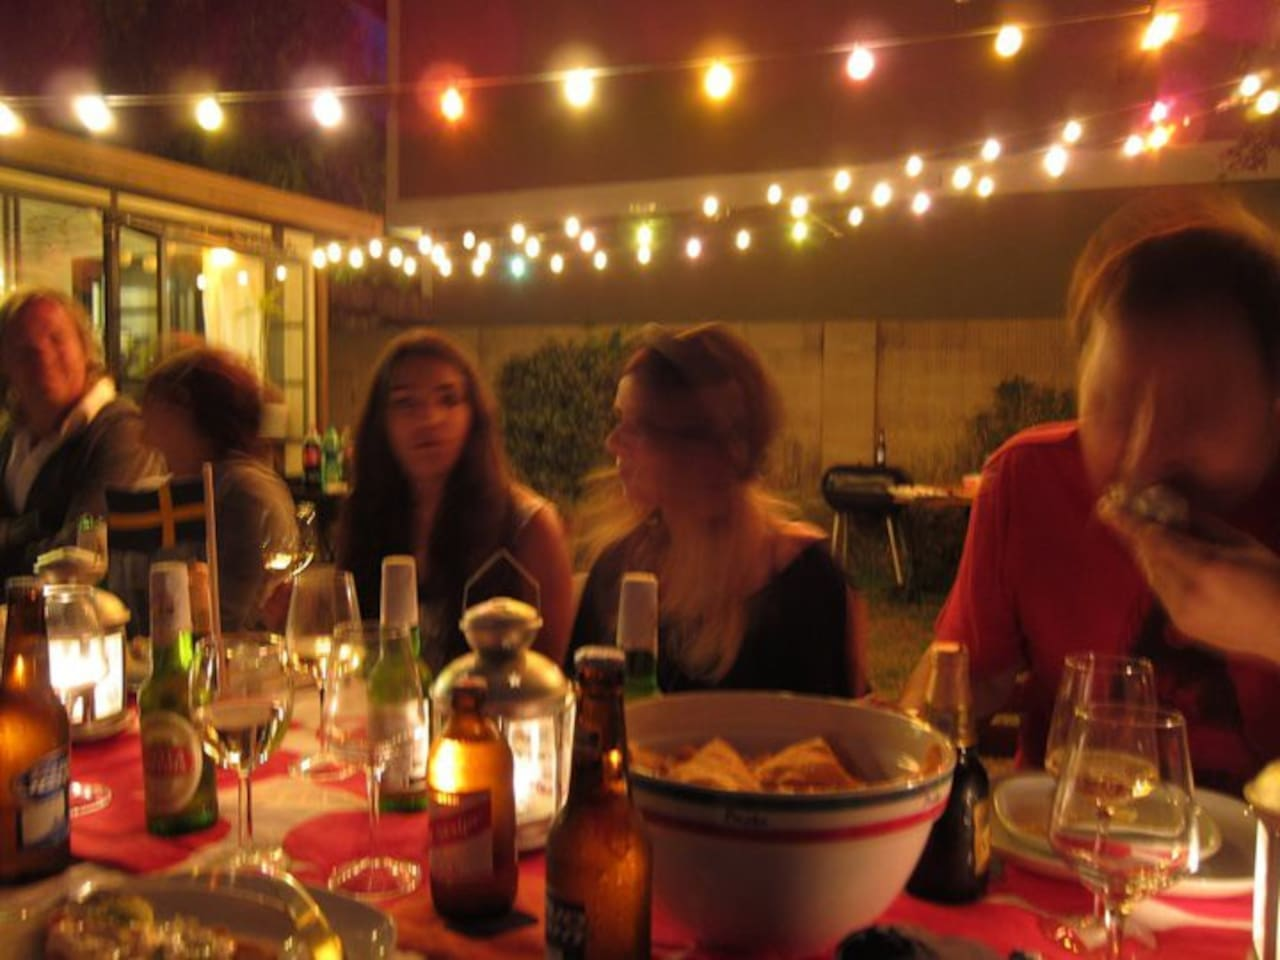 Sitting down for dinner in our backyard - seats atleast 16 people :)